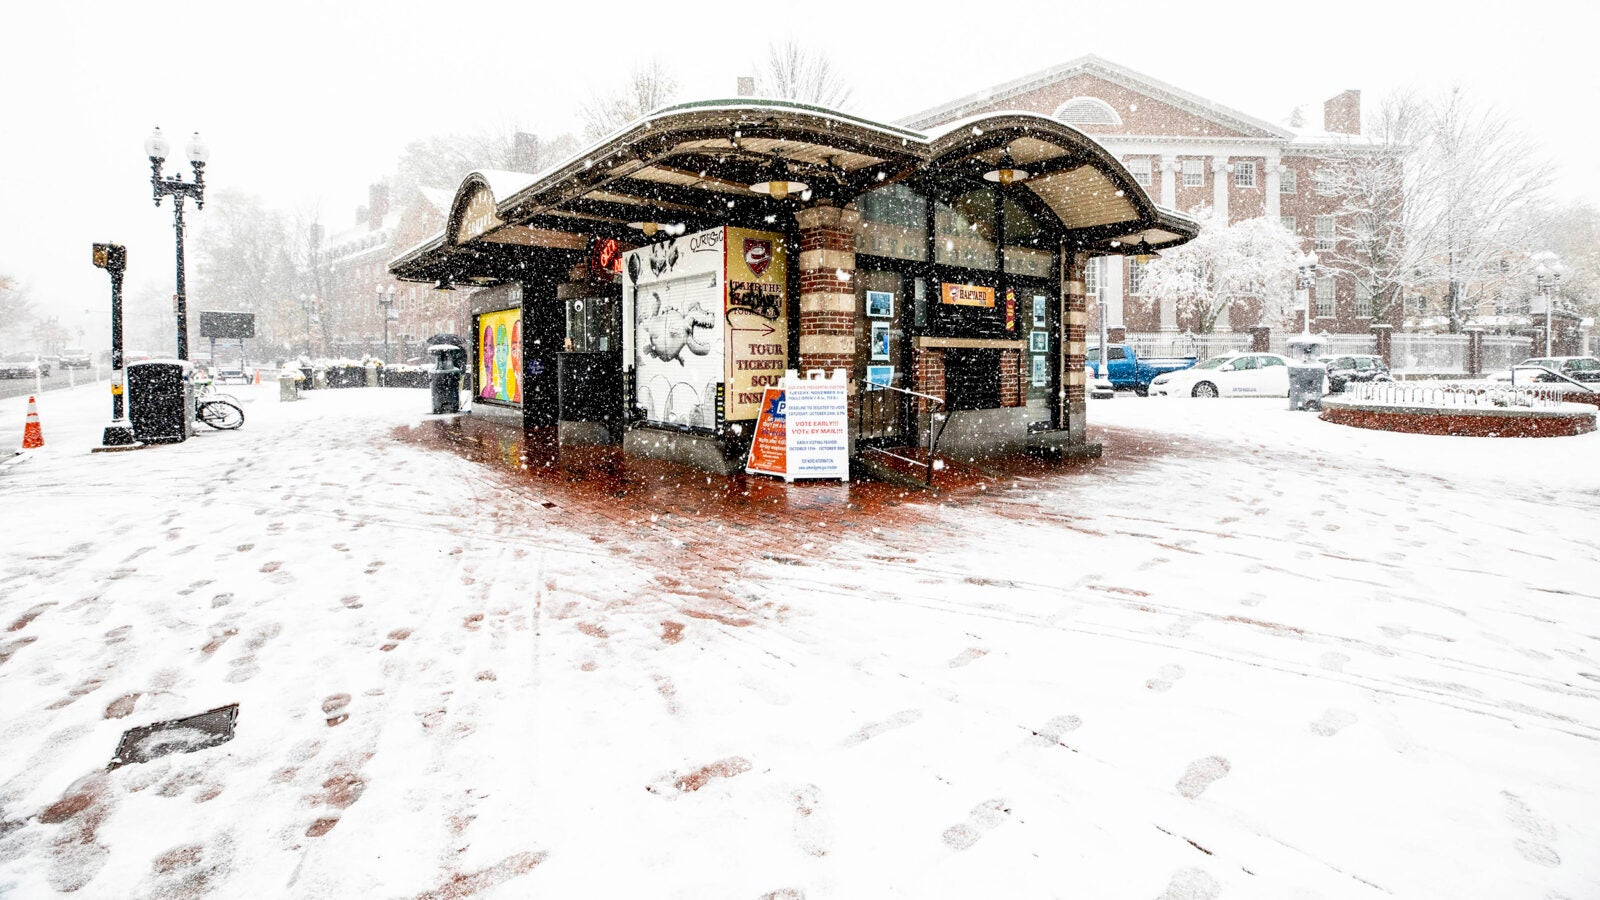 The Former Out of Town News Stand is covered in snow.